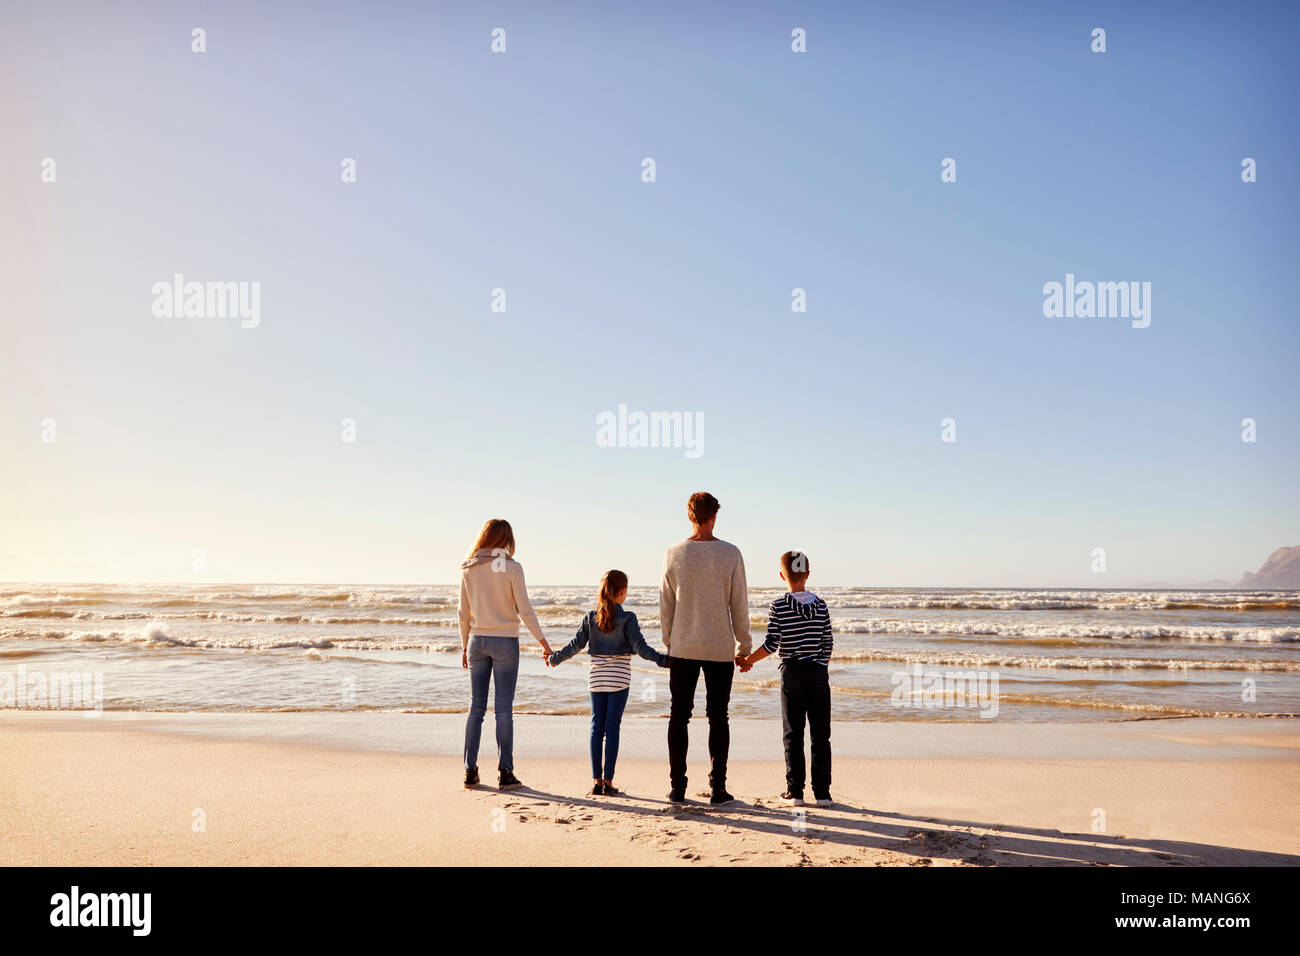 Rear View Of Family On Winter Beach Holding Hands Looking At Sea - Stock Image